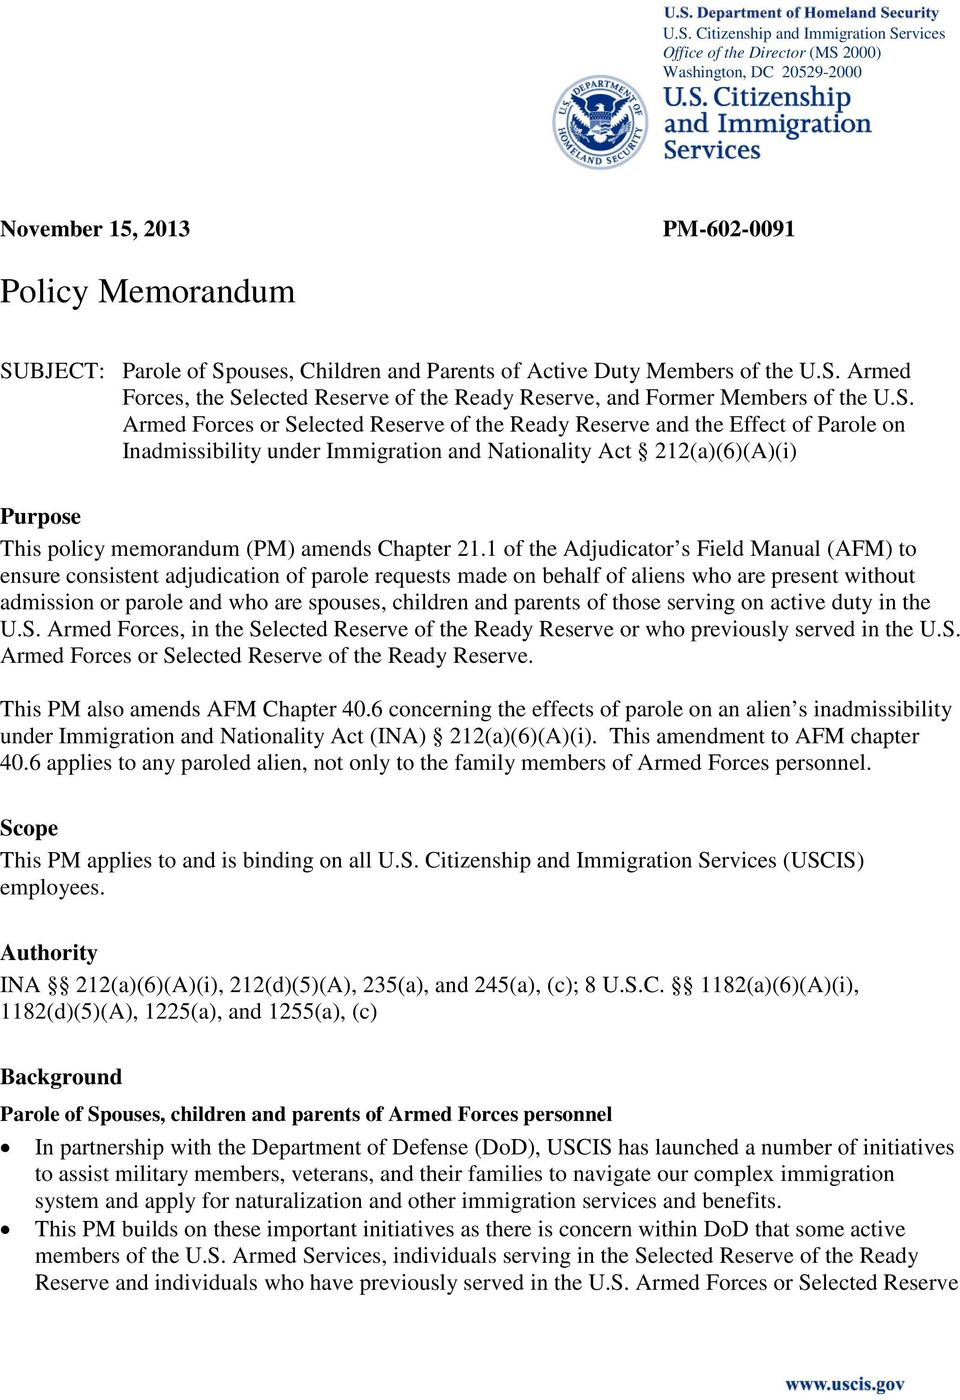 Armed Forces, the Selected Reserve of the Ready Reserve, and Former Members of the U.S. Armed Forces or Selected Reserve of the Ready Reserve and the Effect of Parole on Inadmissibility under Immigration Purpose This policy memorandum (PM) amends Chapter 21.